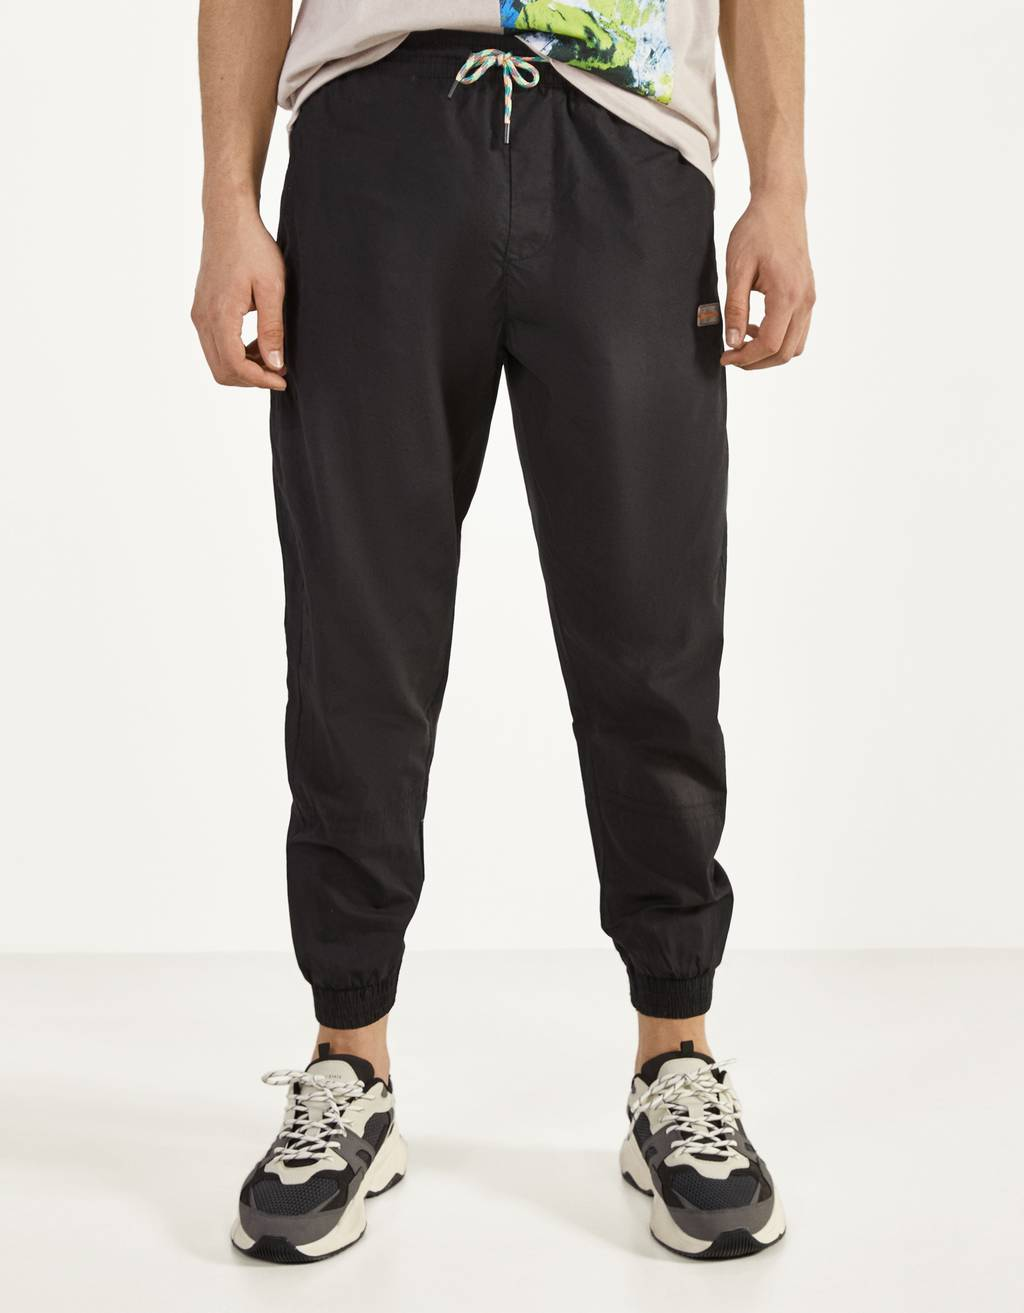 Poplin jogging trousers